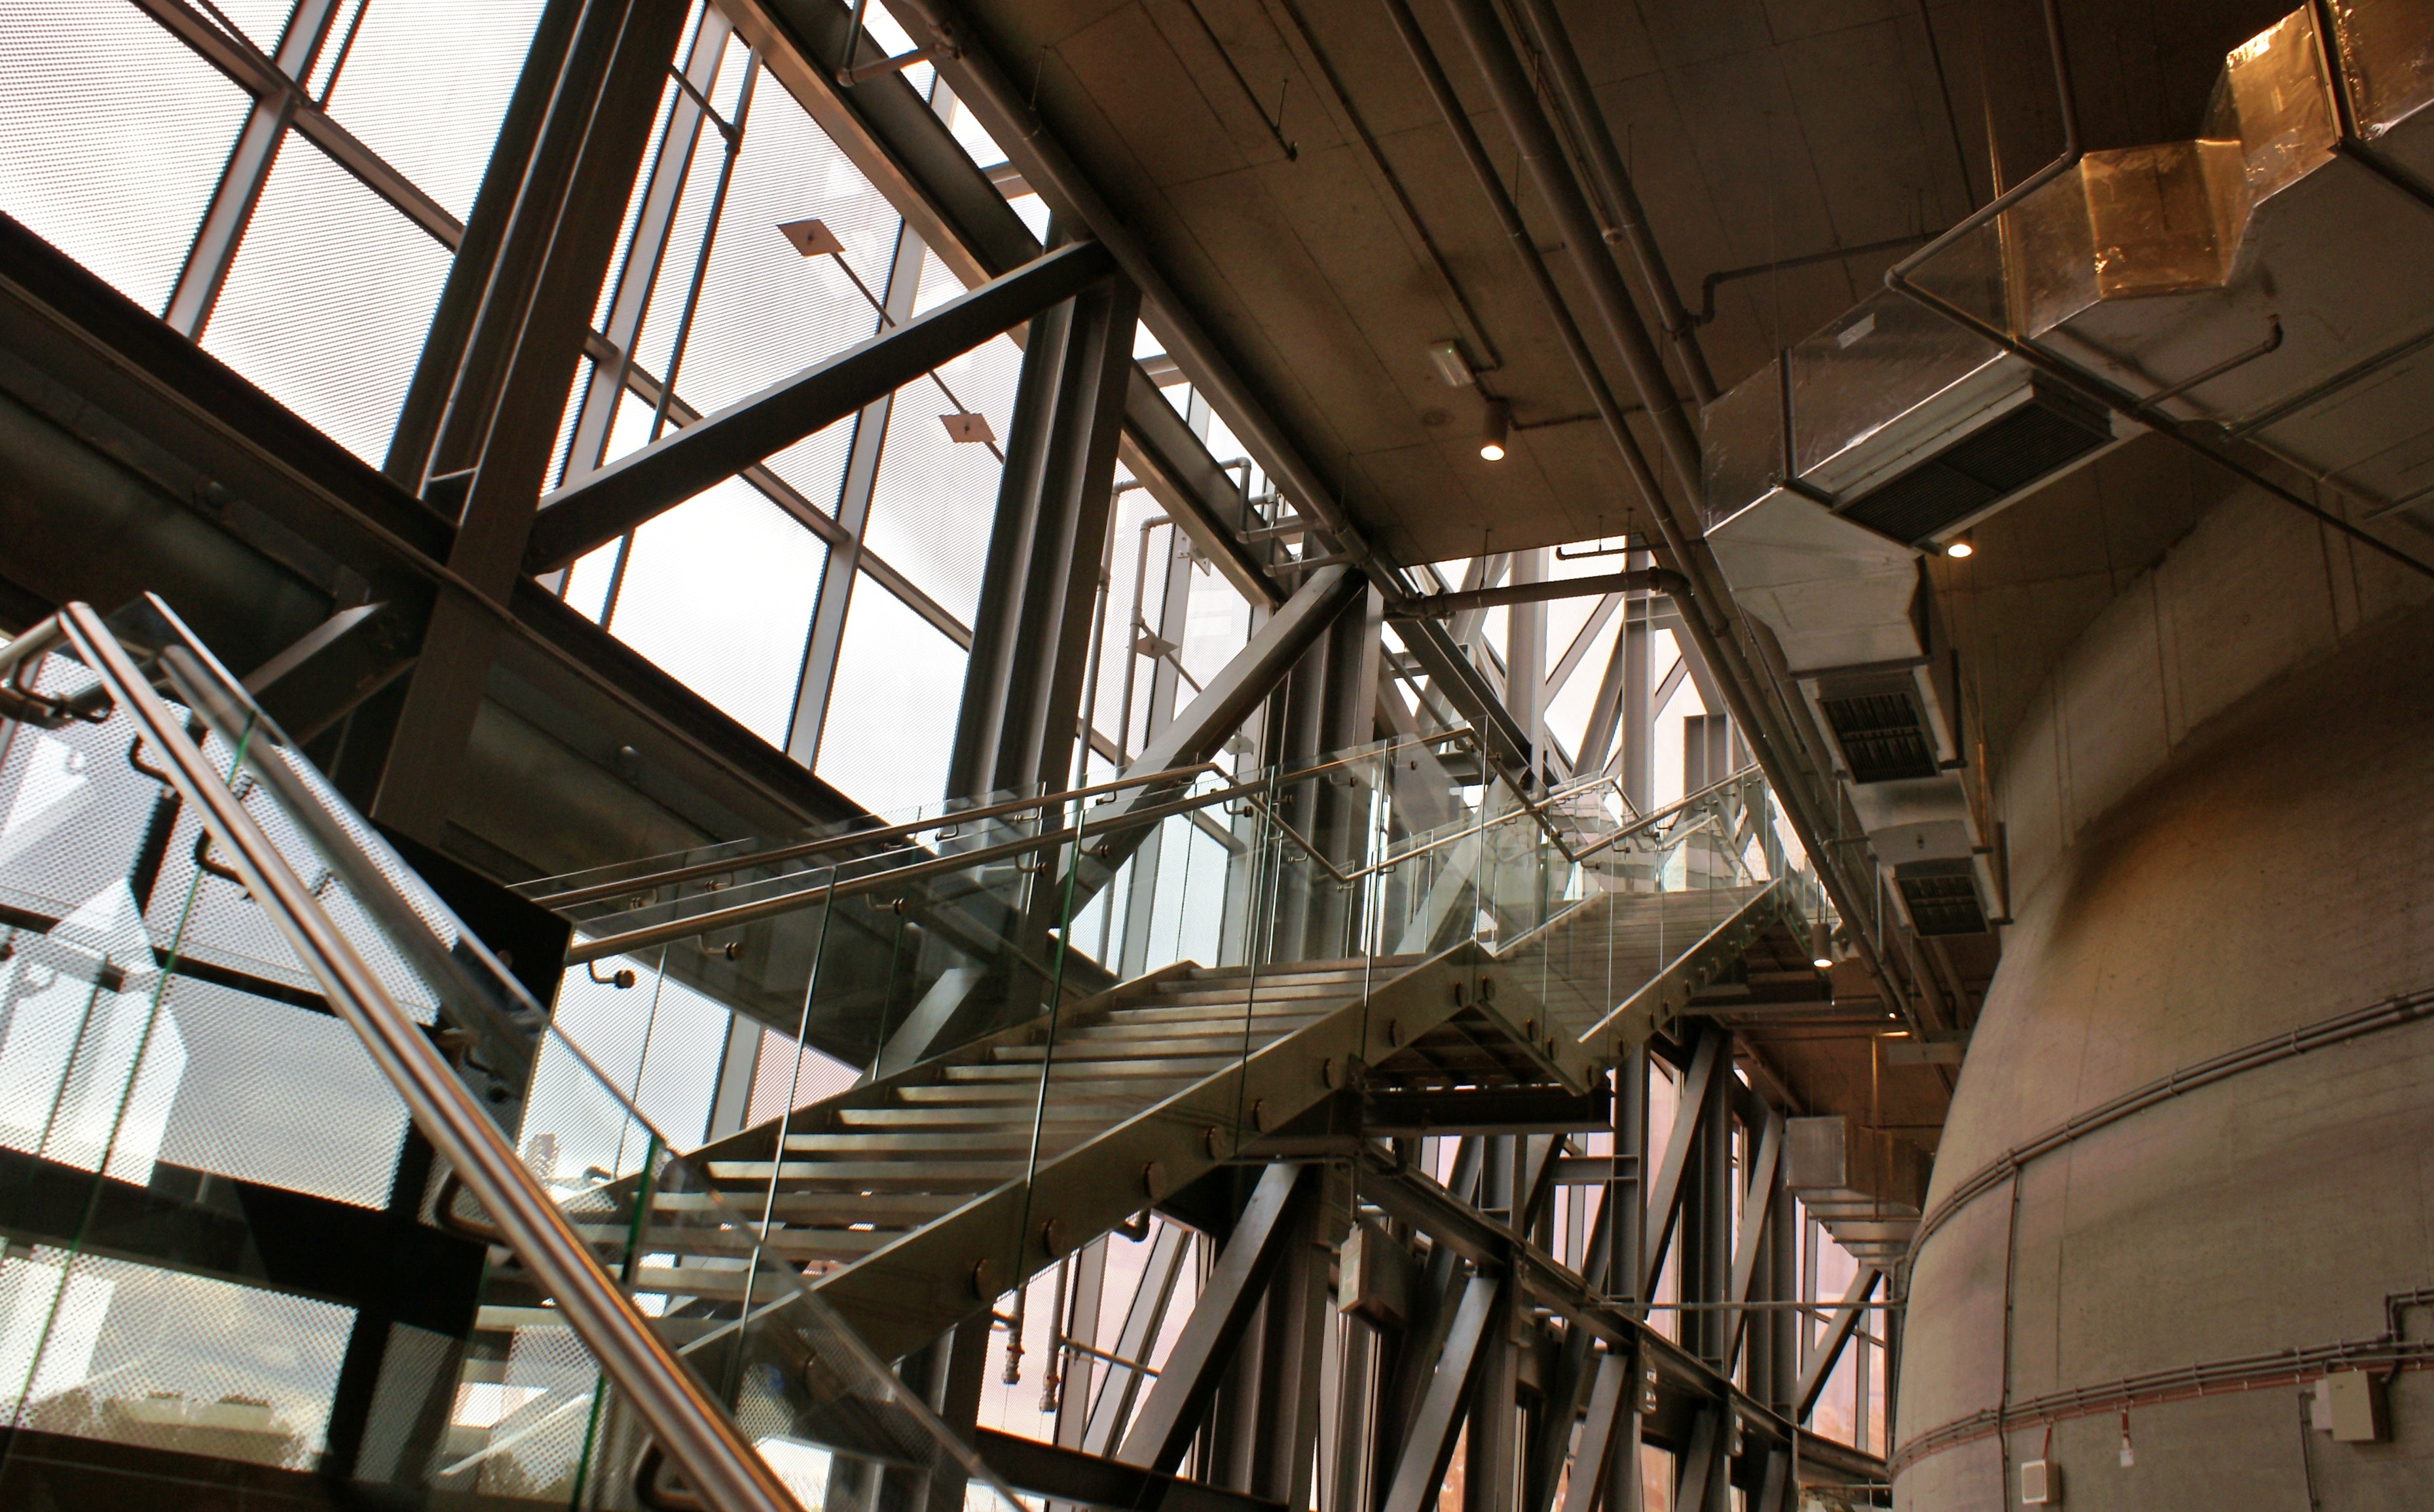 Low Angle View of Staircase, Metal, Urban, Tube, Technology, HQ Photo